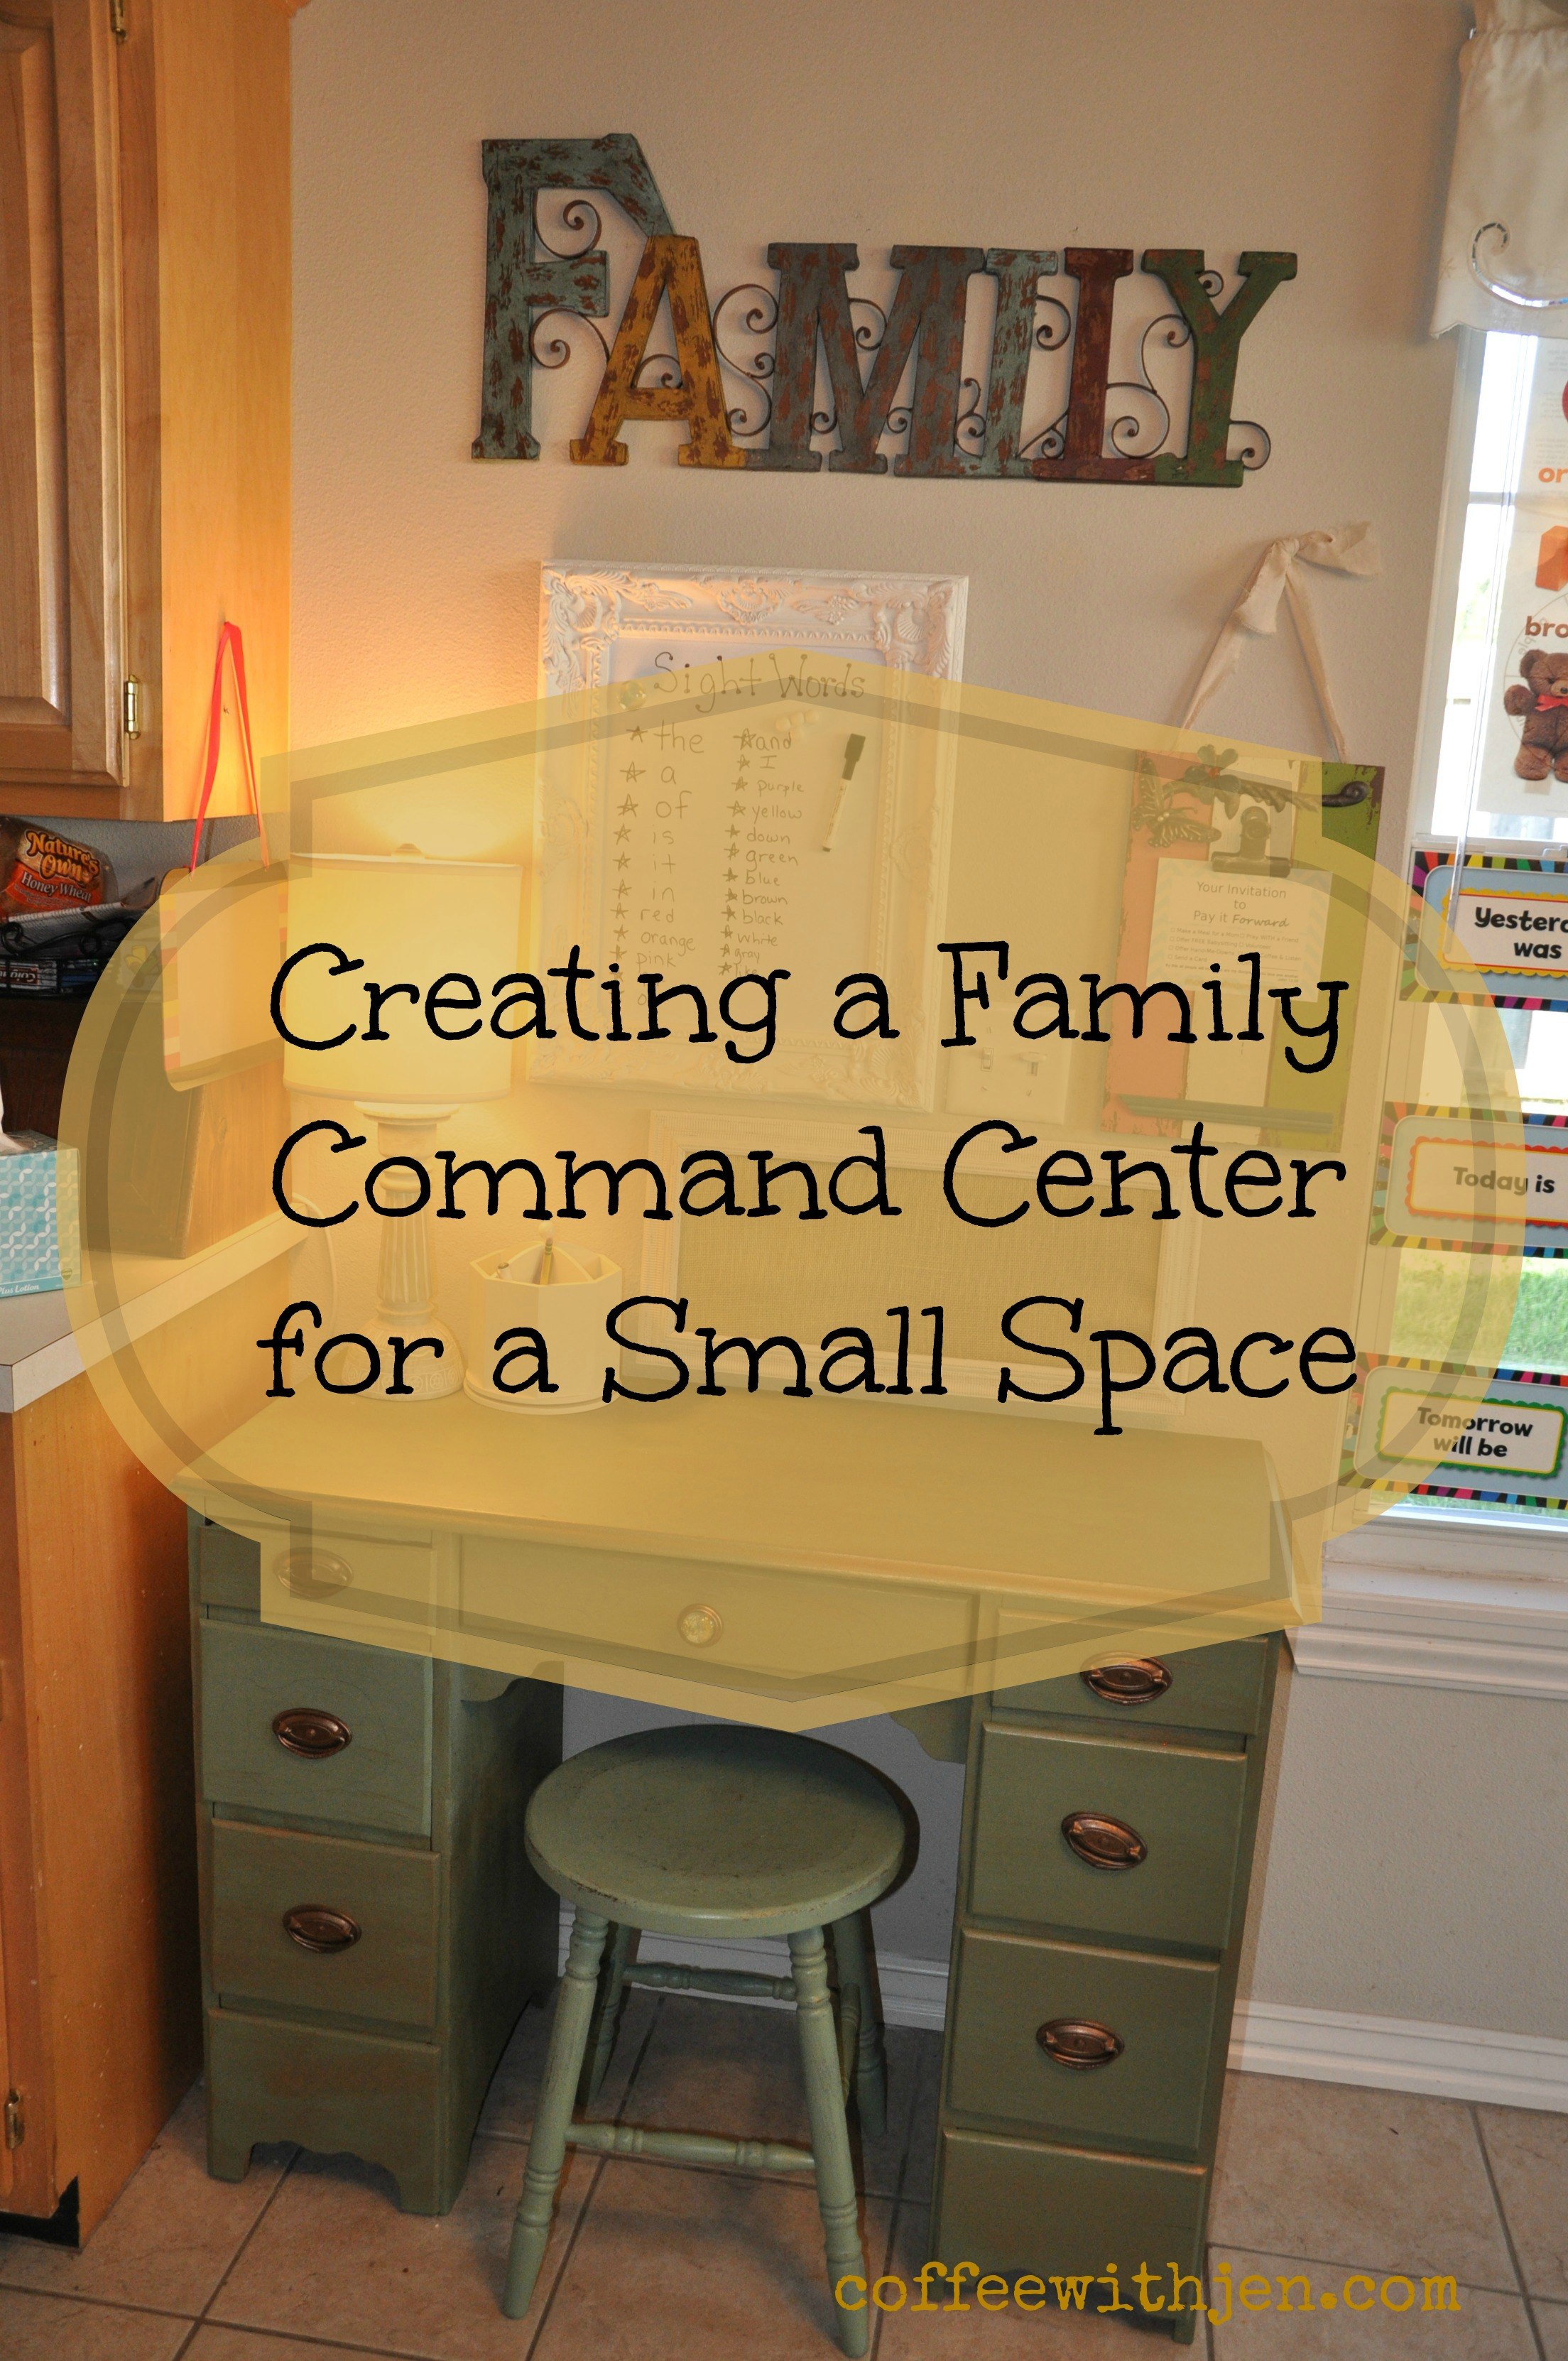 Creating A Family Command Center Coffeewithjen